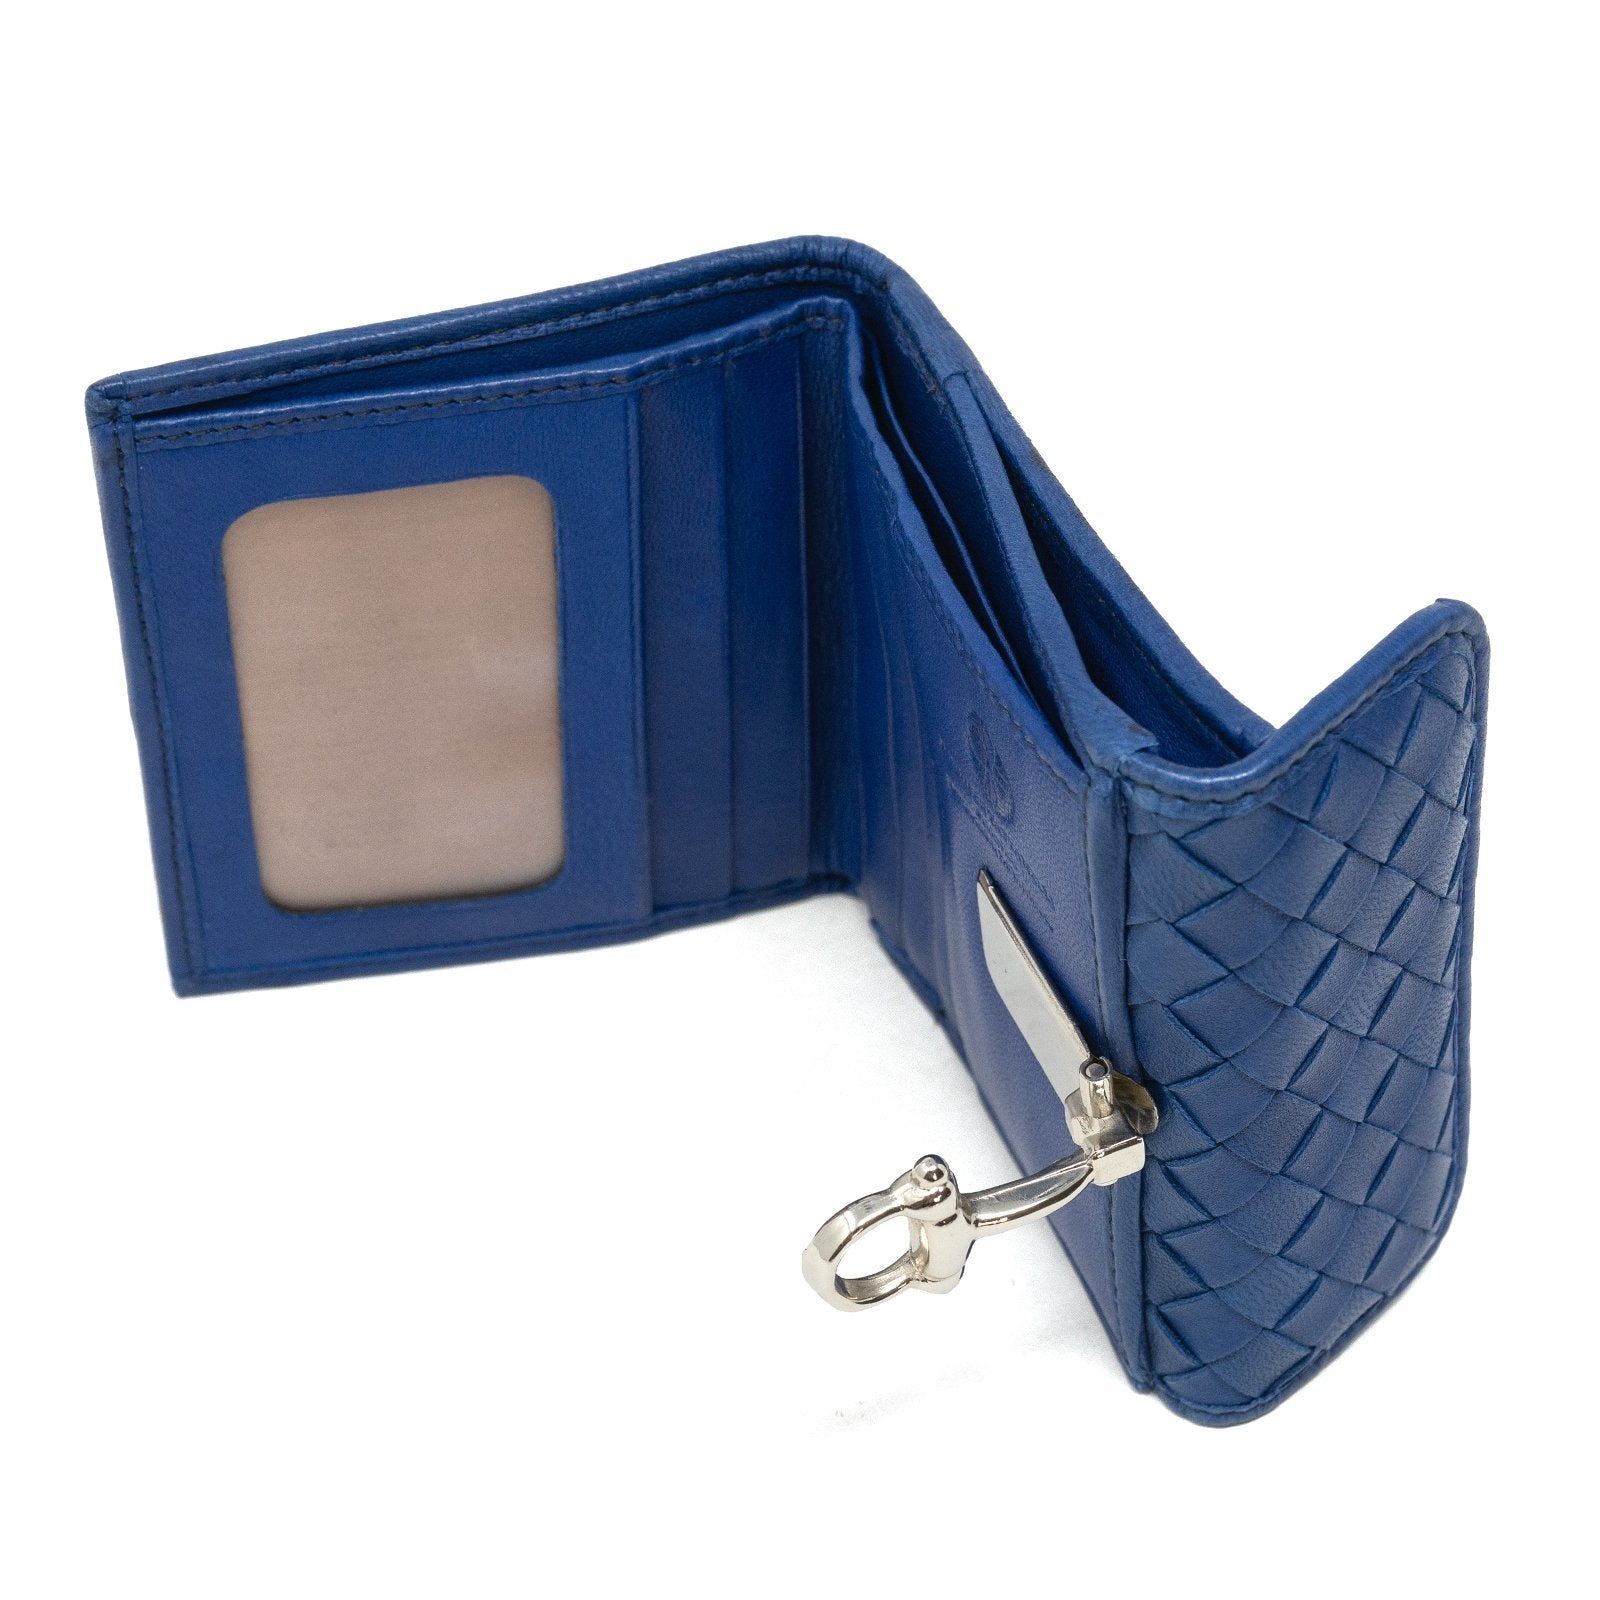 Women Intrecciato Horsebit Leather Wallet in White - Jennifer Tattanelli